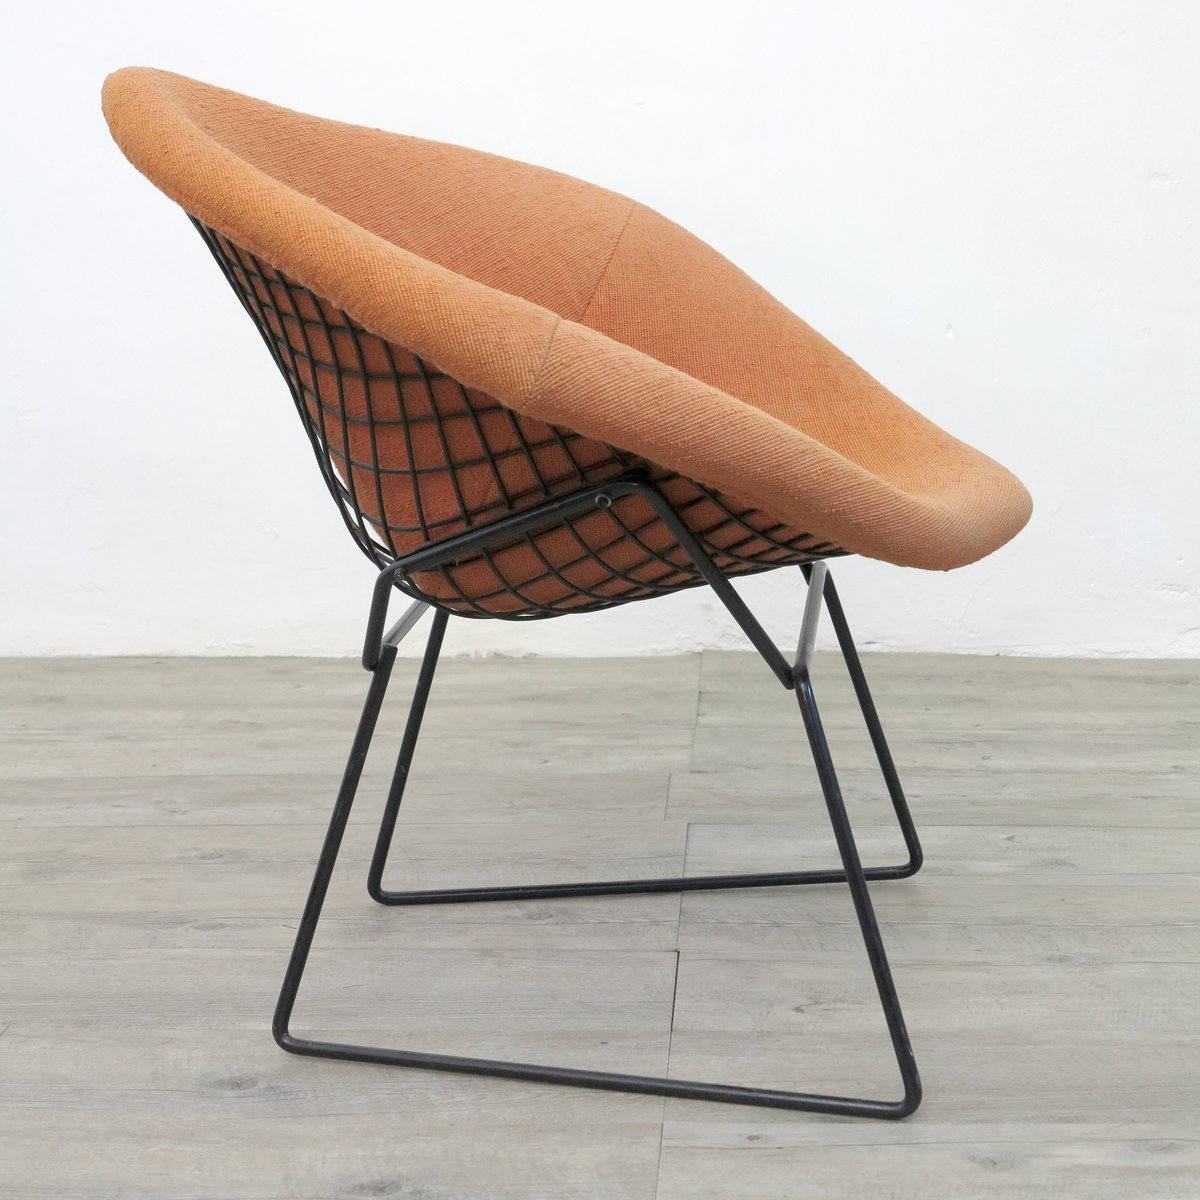 Vintage Diamond Chair By Harry Bertoia For Knoll 1970s